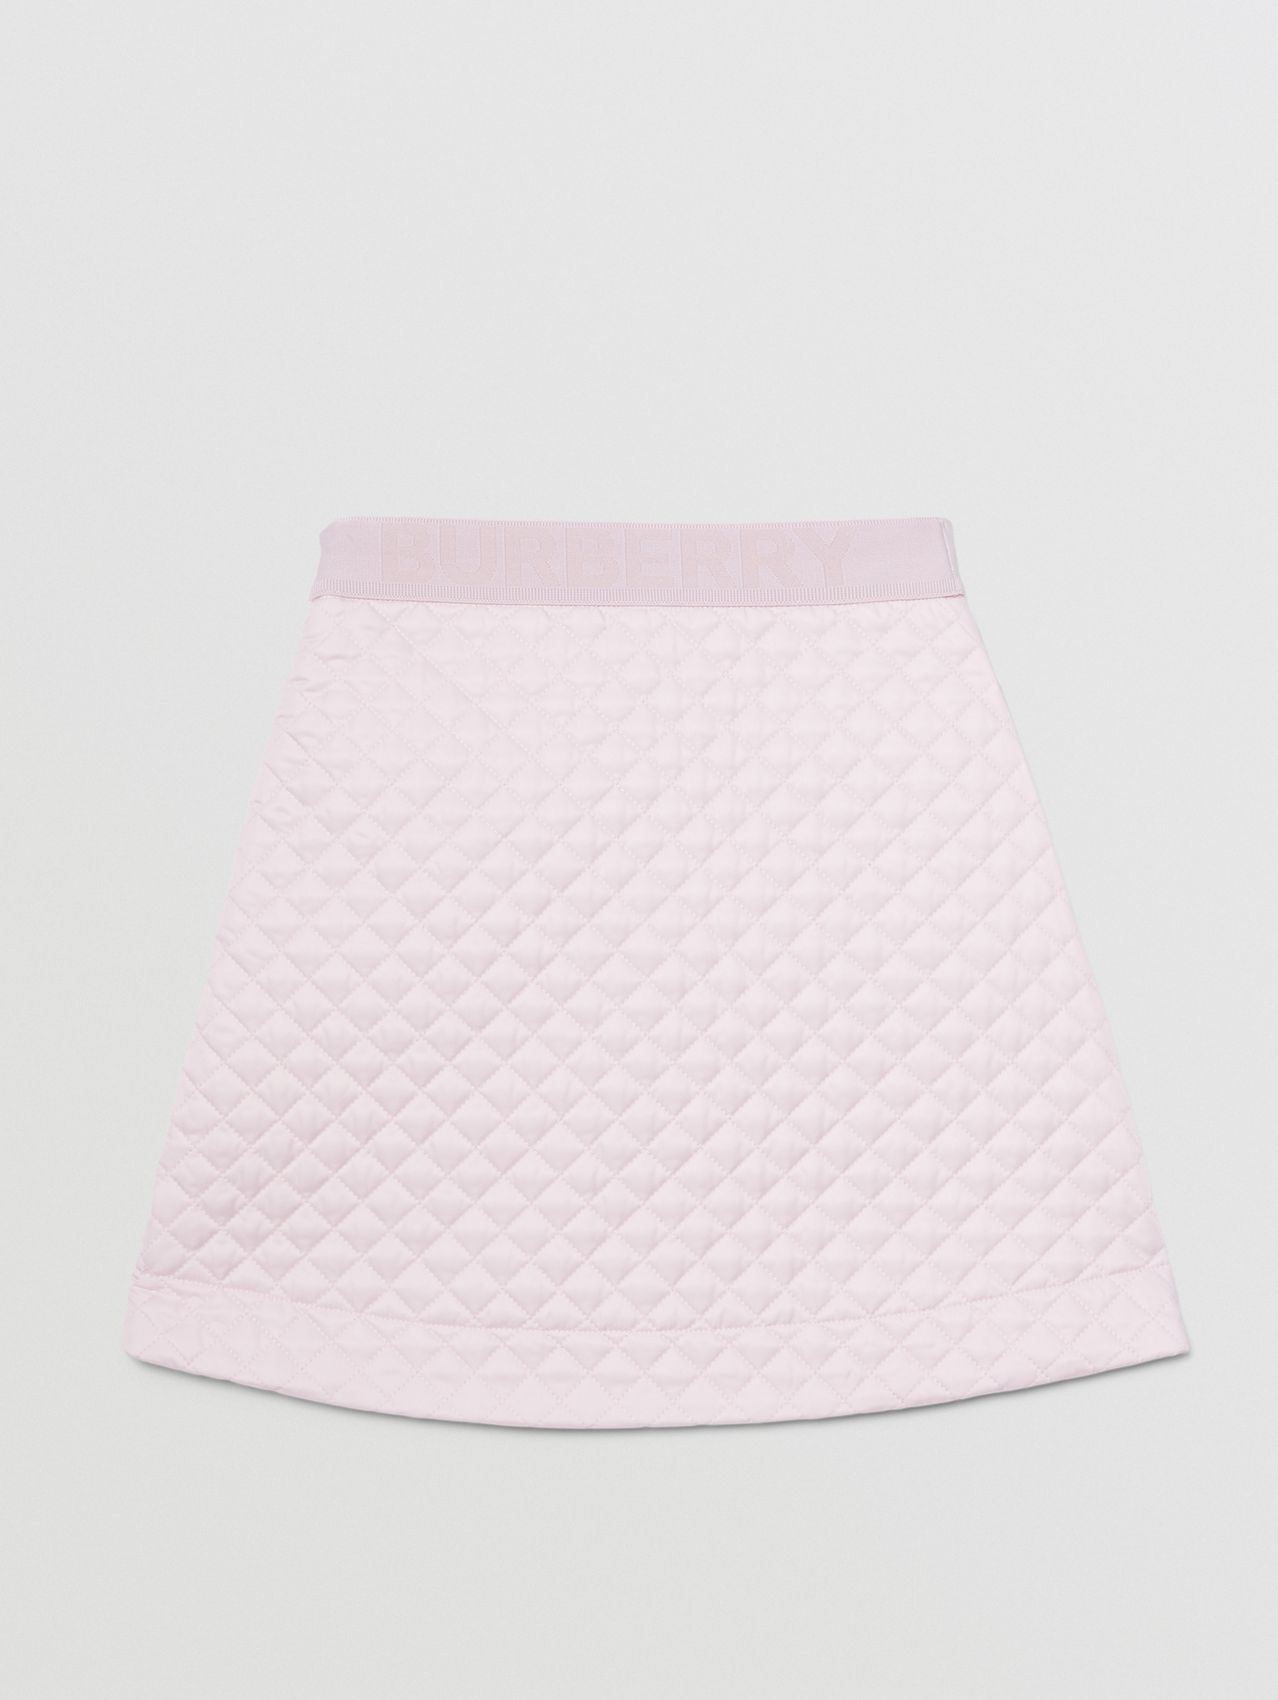 Monogram Quilted Panel Recycled Polyester Skirt in Pastel Pink